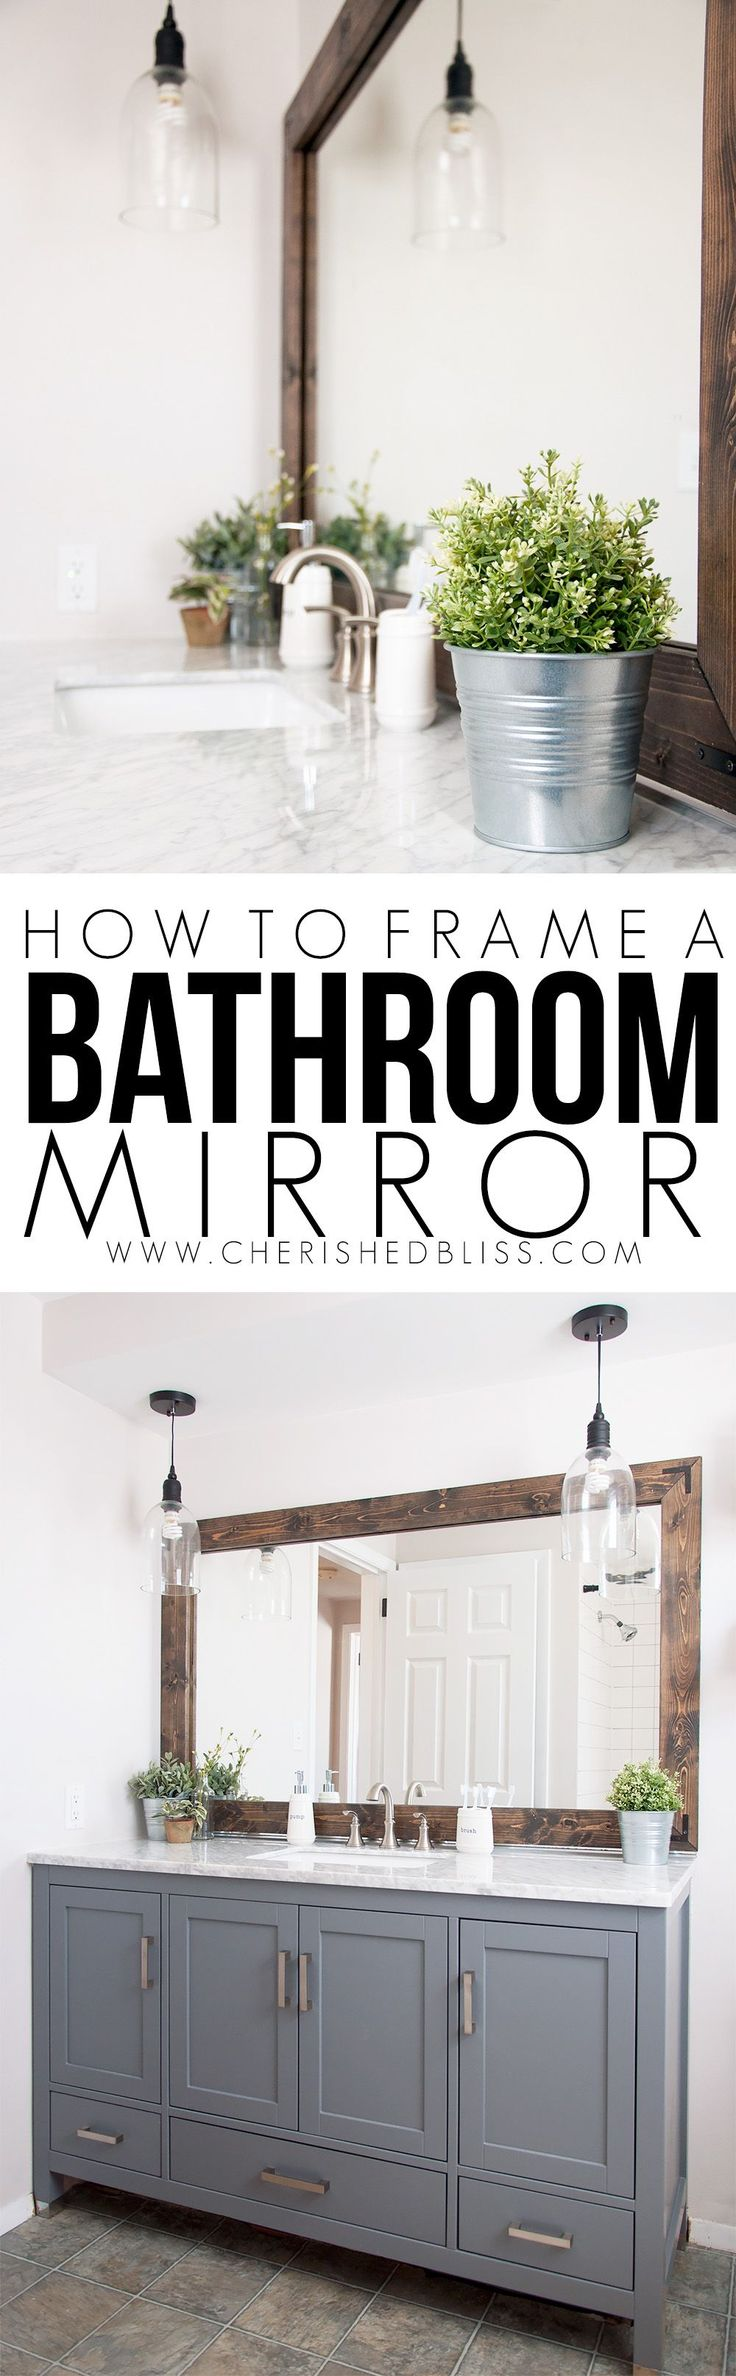 Best Bathroom Mirrors Ideas On Pinterest - Bathroom mirror design ideas